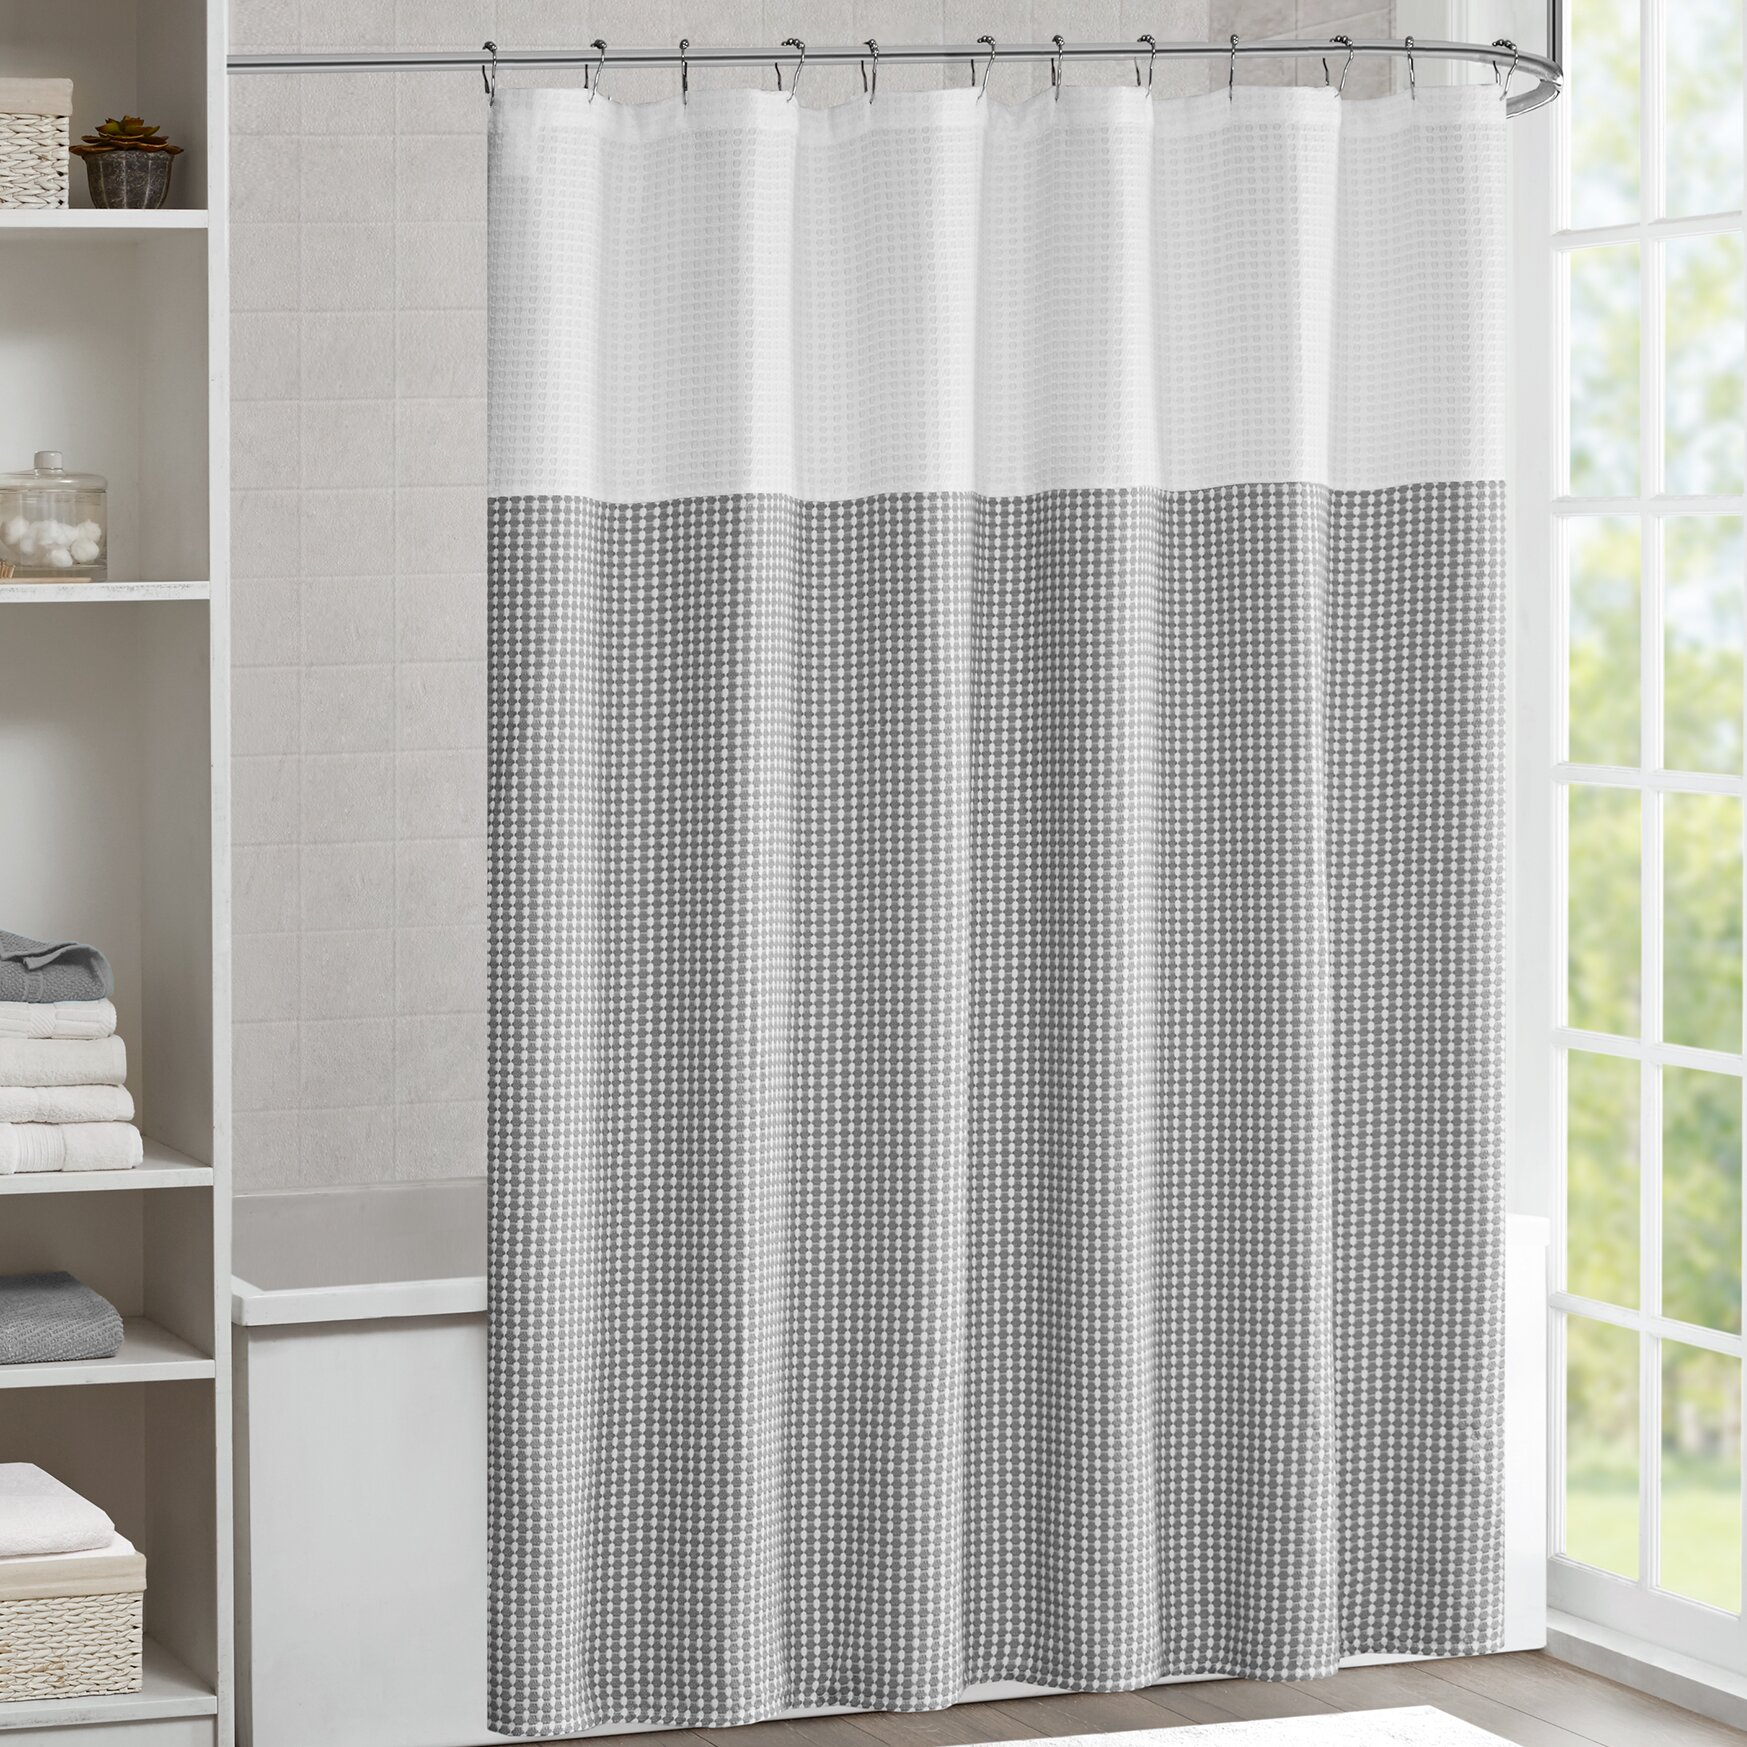 Laurel Foundry Modern Farmhouse Moreland Shower Curtain